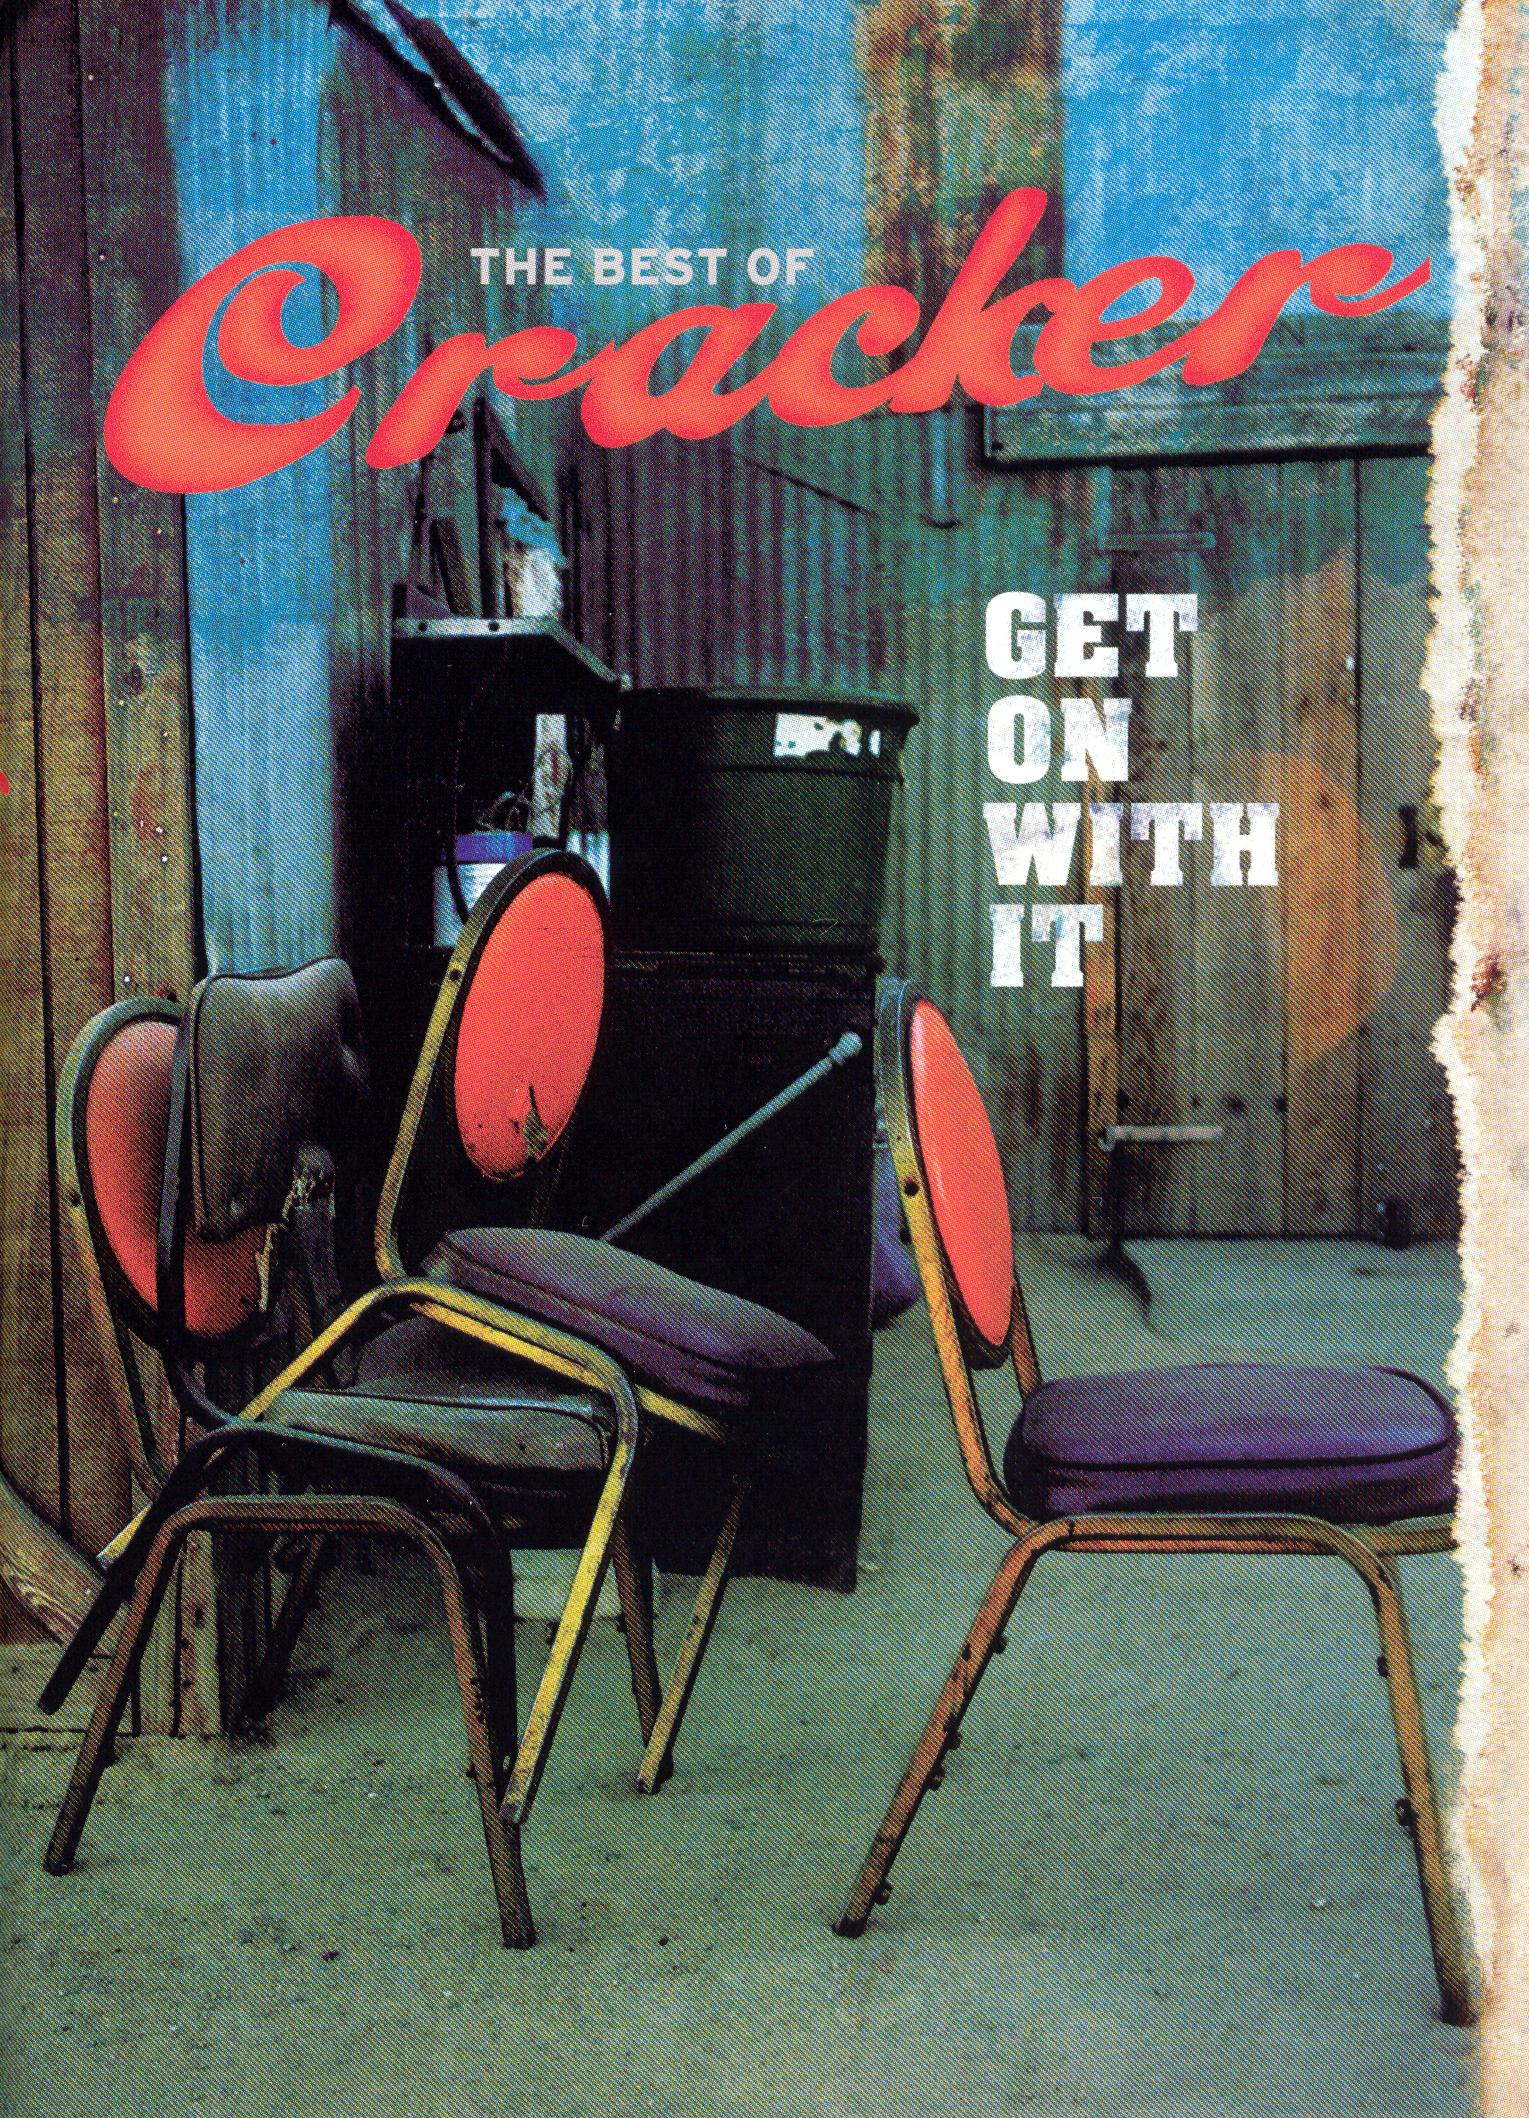 Cracker: Get on With It - The Best of Cracker